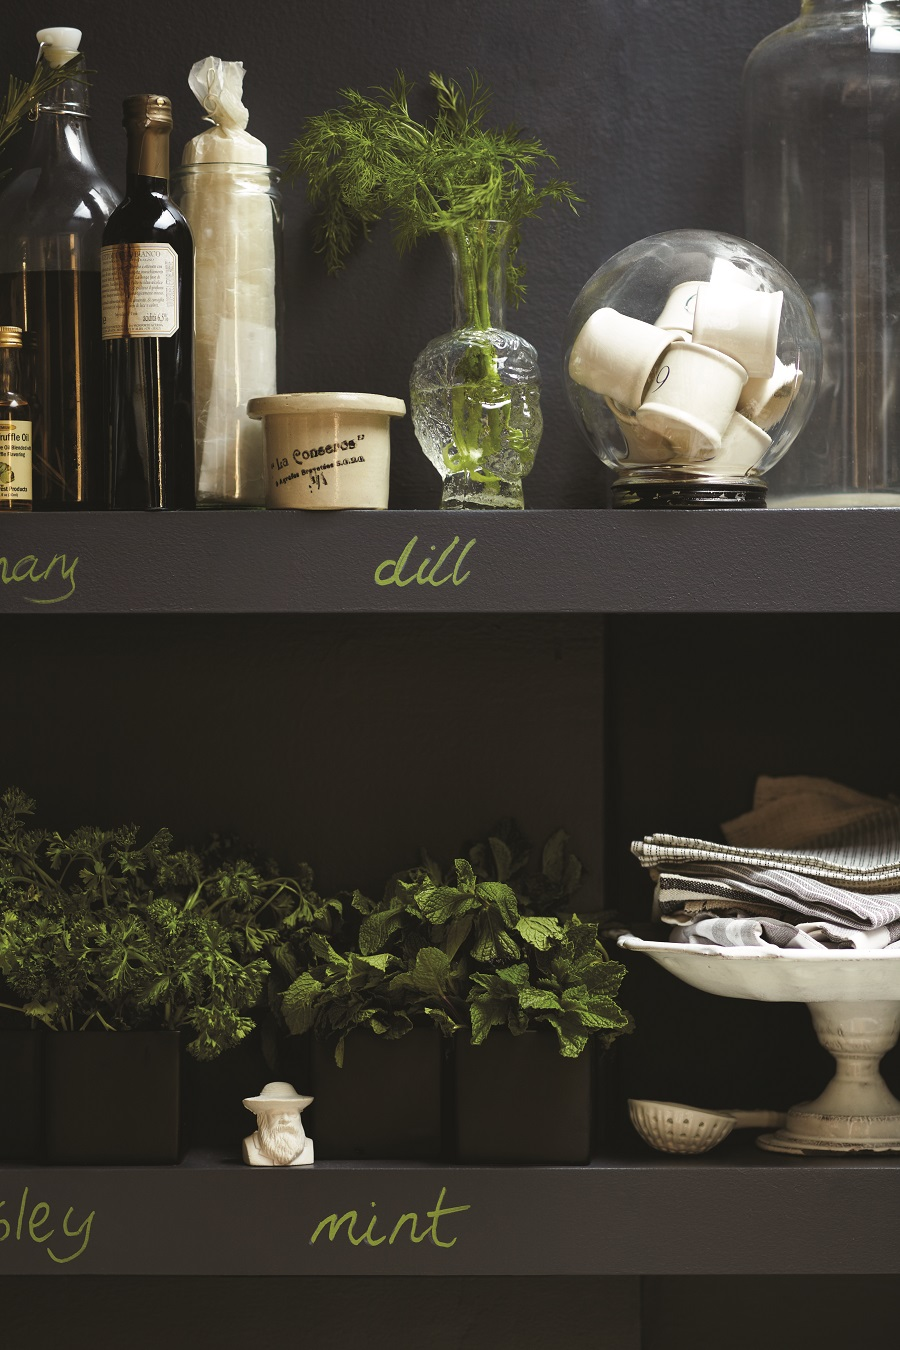 a handy chalkboard right where you need it - on the shelf